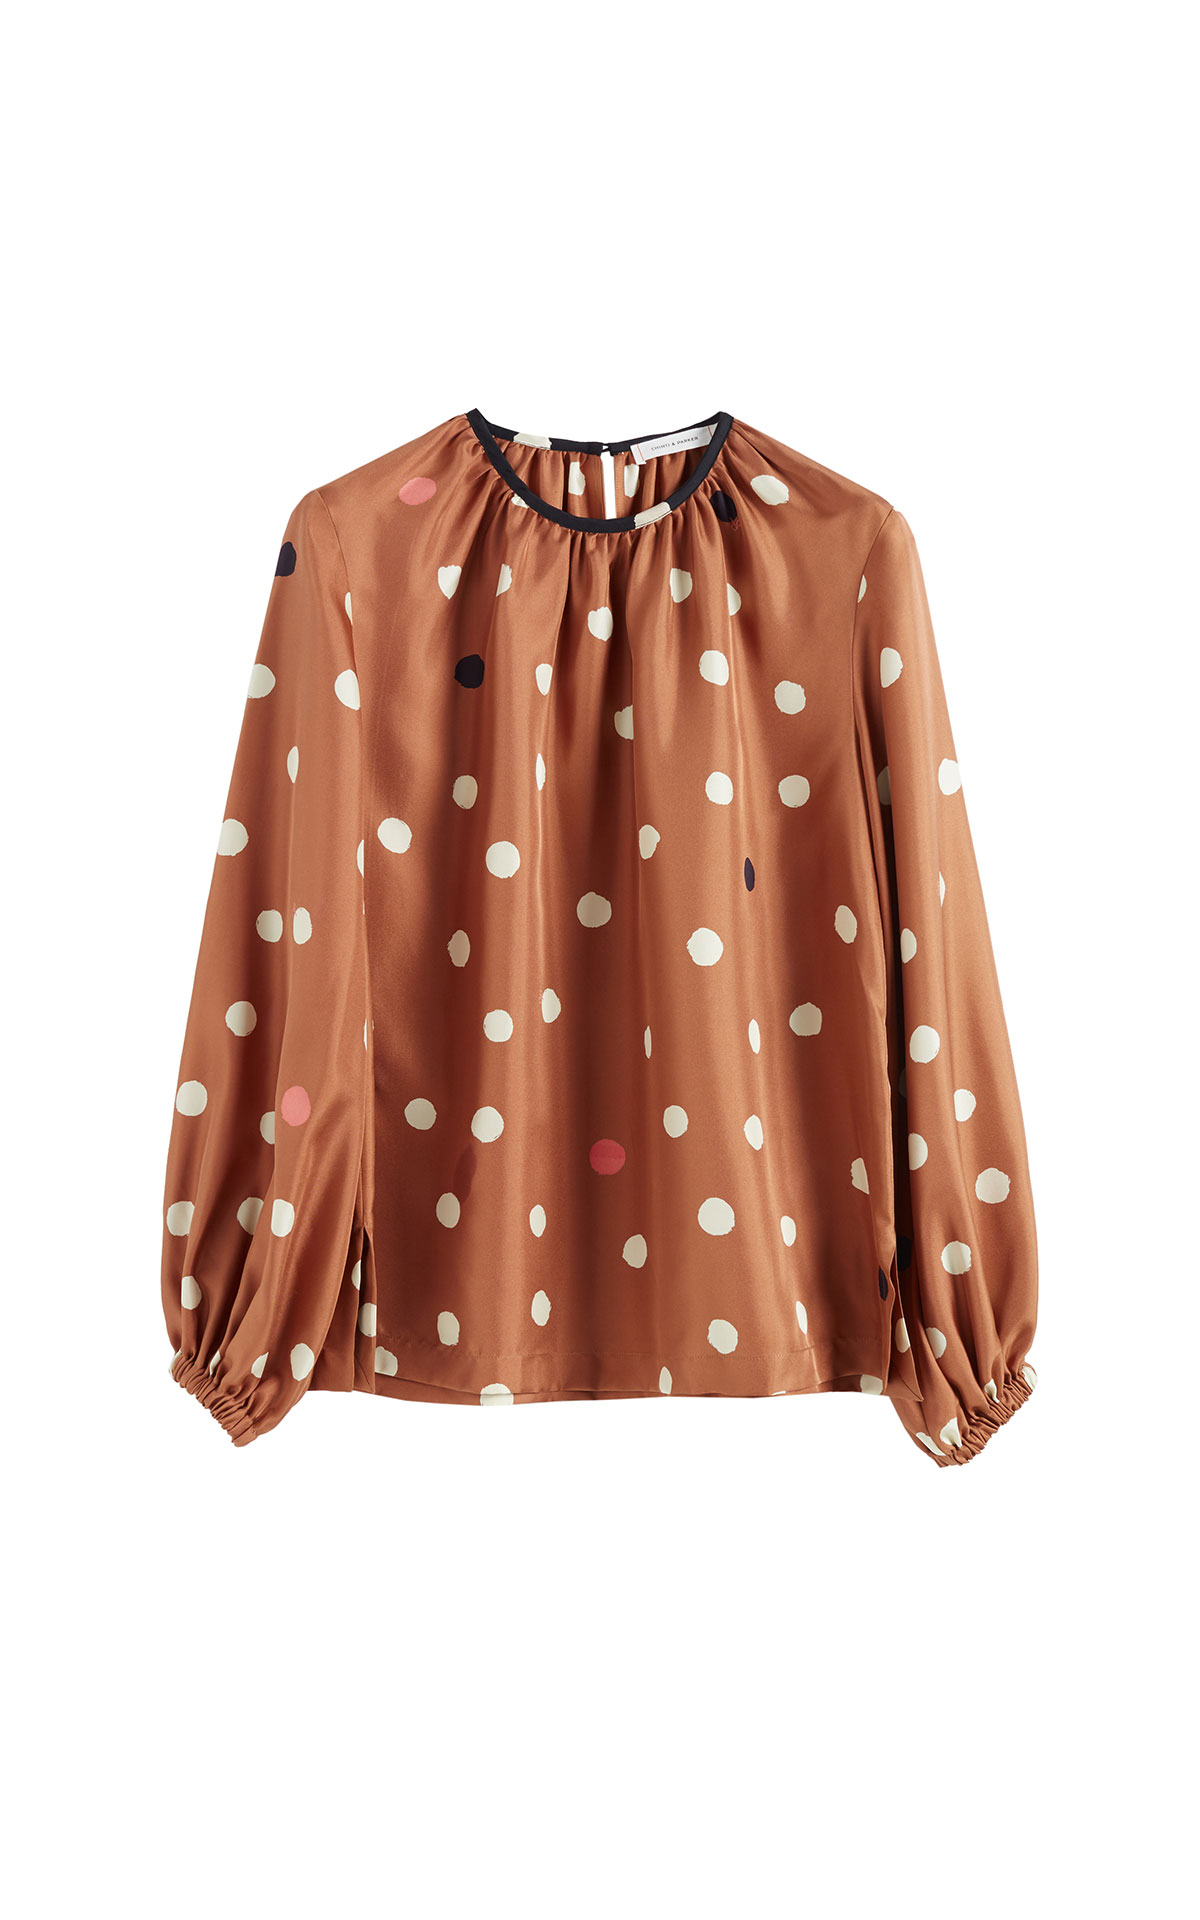 Chinti & Parker Brown painted spot top from Bicester Village